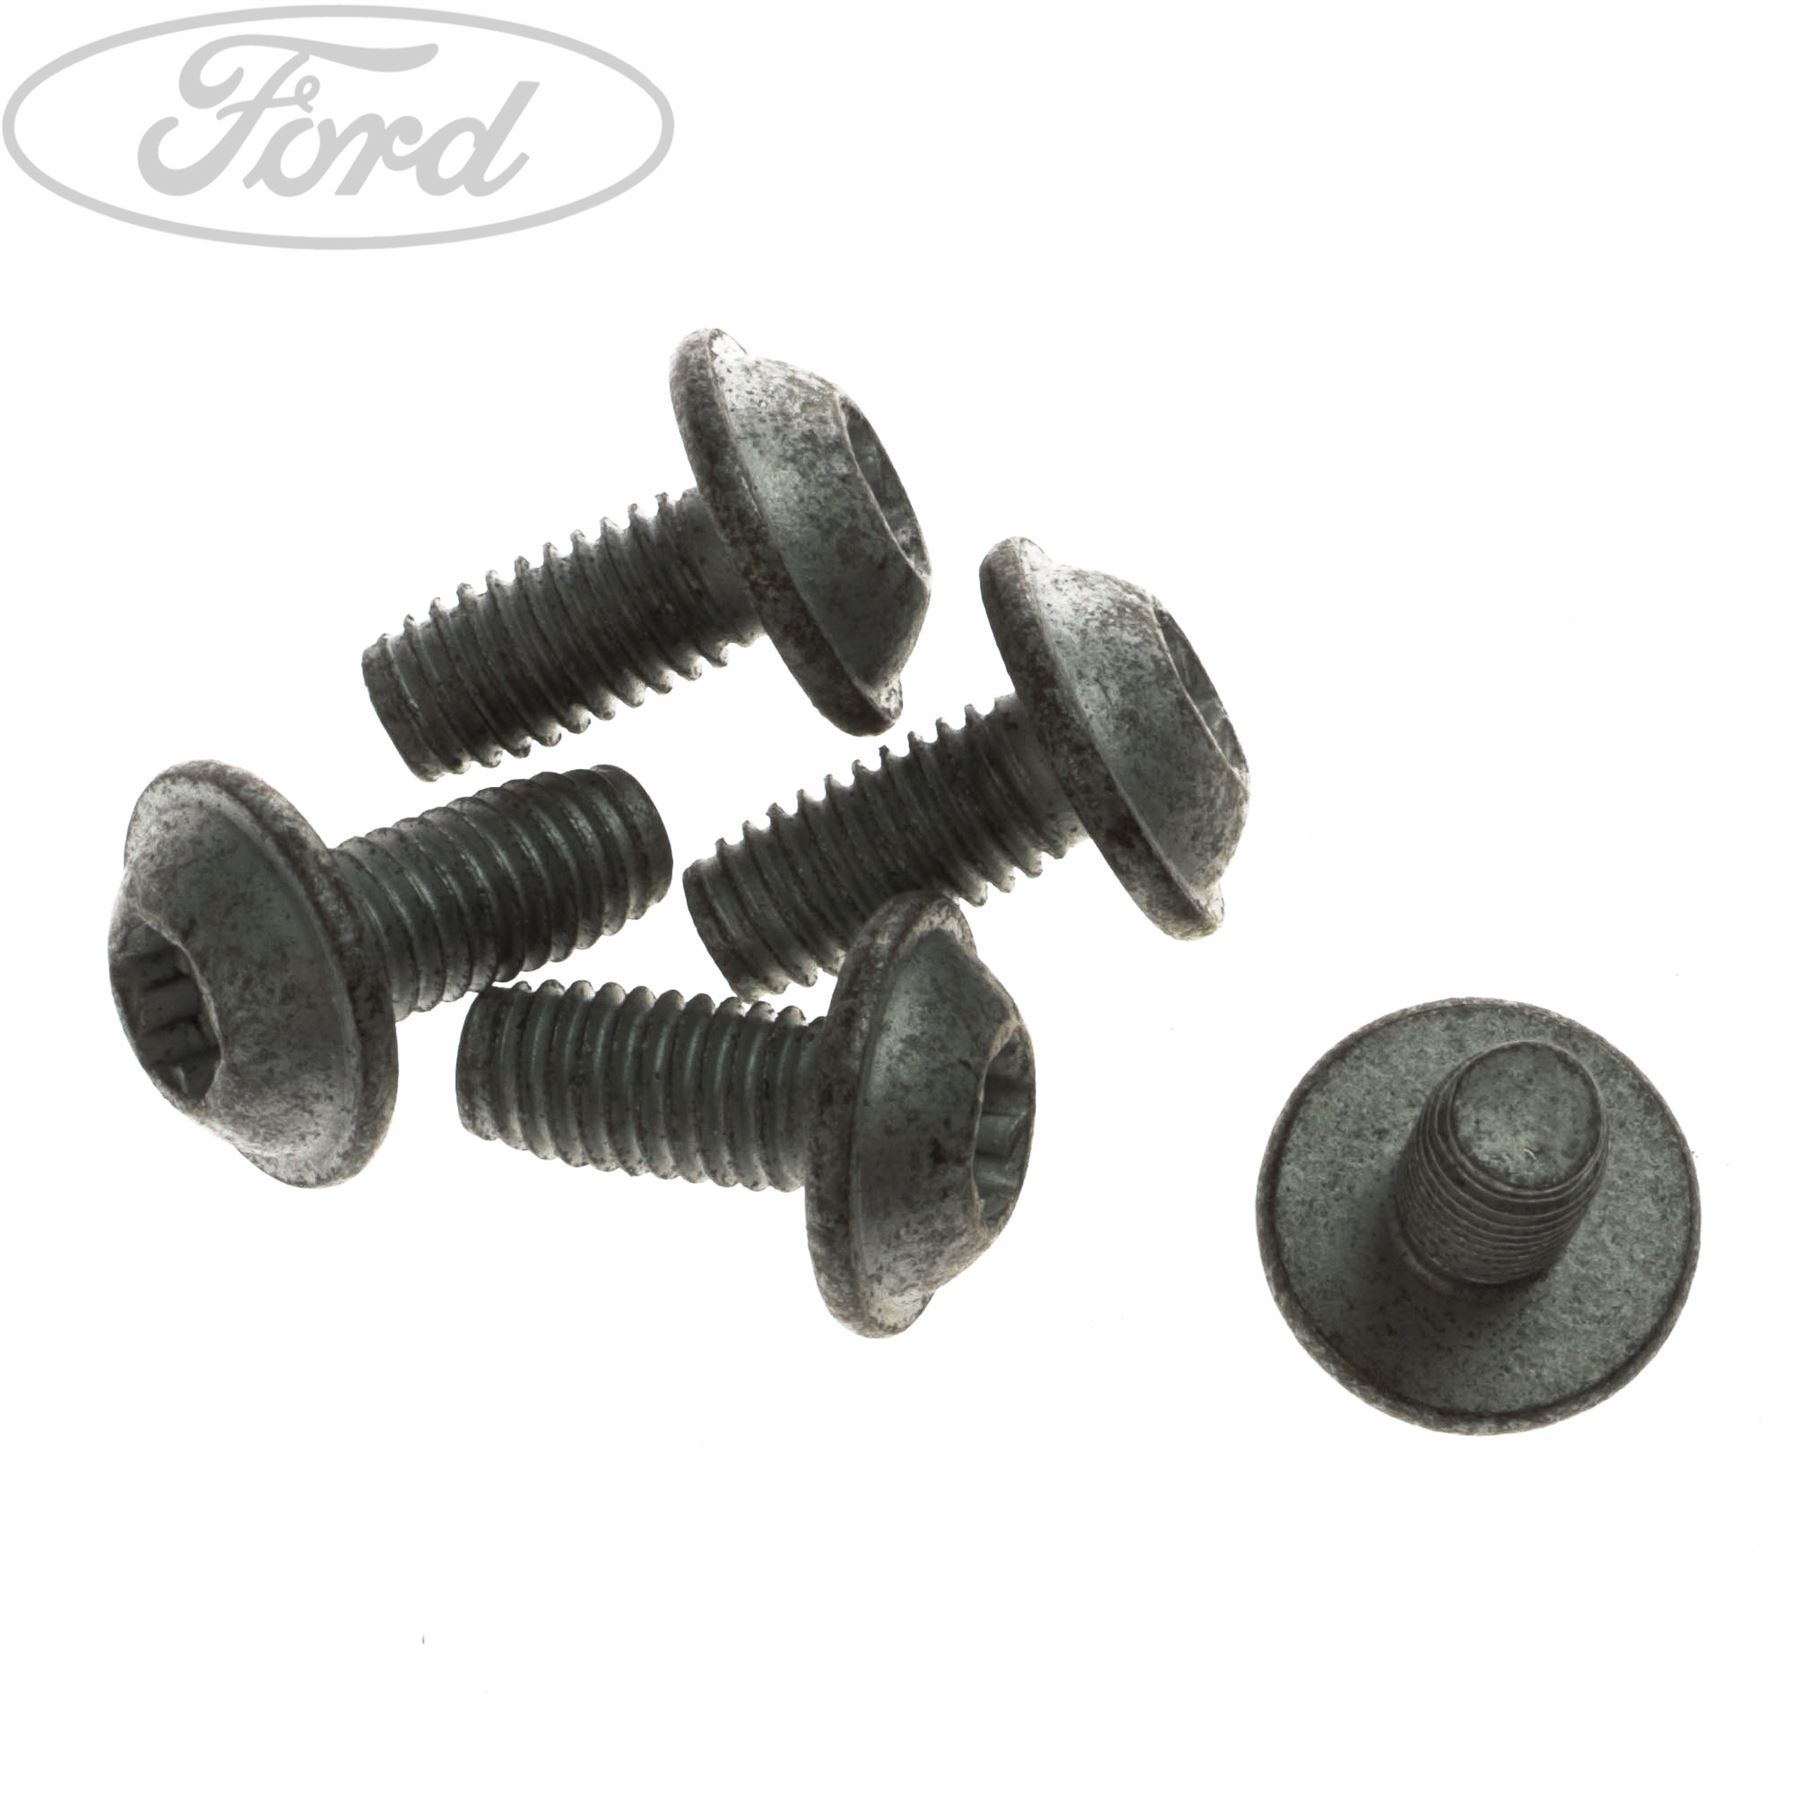 Genuine Ford C Max Mondeo S Focus Fuel Filter Bracket Mounting Screw 1700136